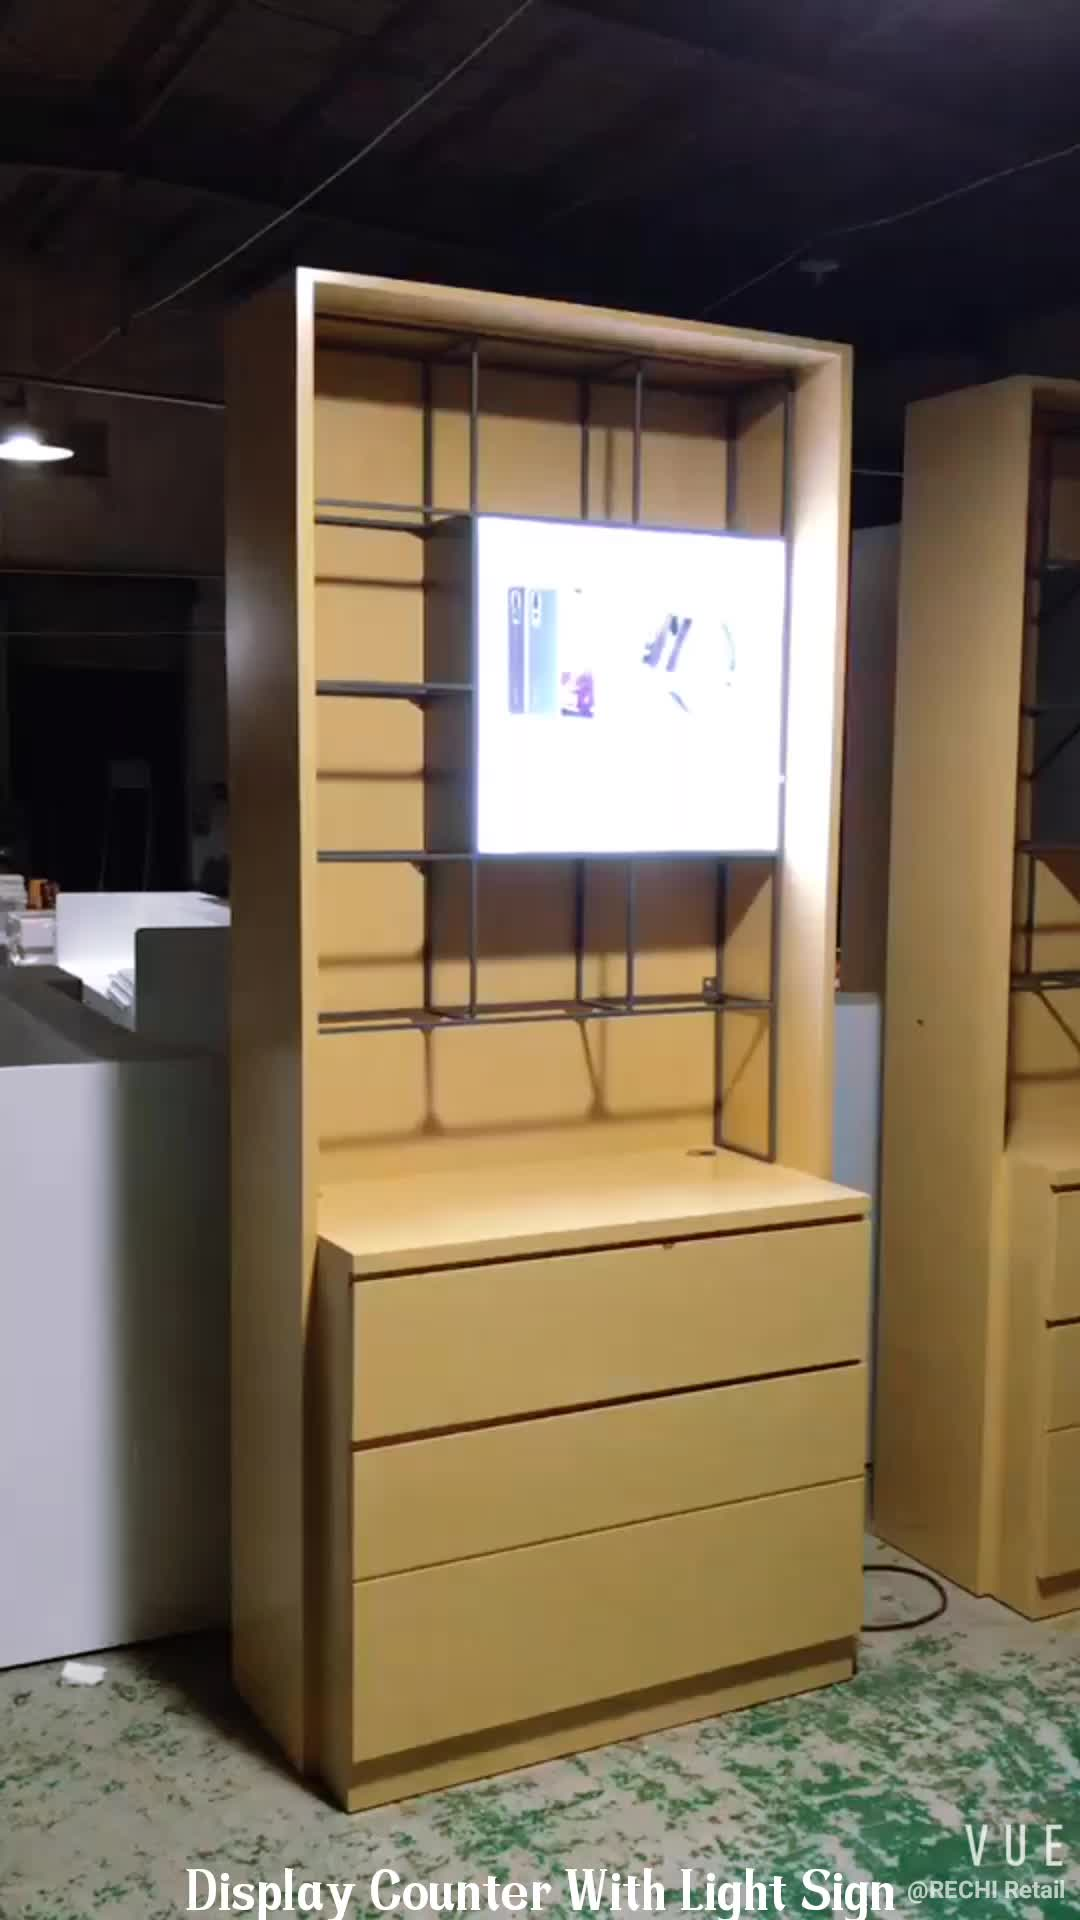 RECHI Custom Design & Made Wall Showcase for Mobile Phone Shop Cell Phone Accessory Display Counter With Shelf and Lighting Box